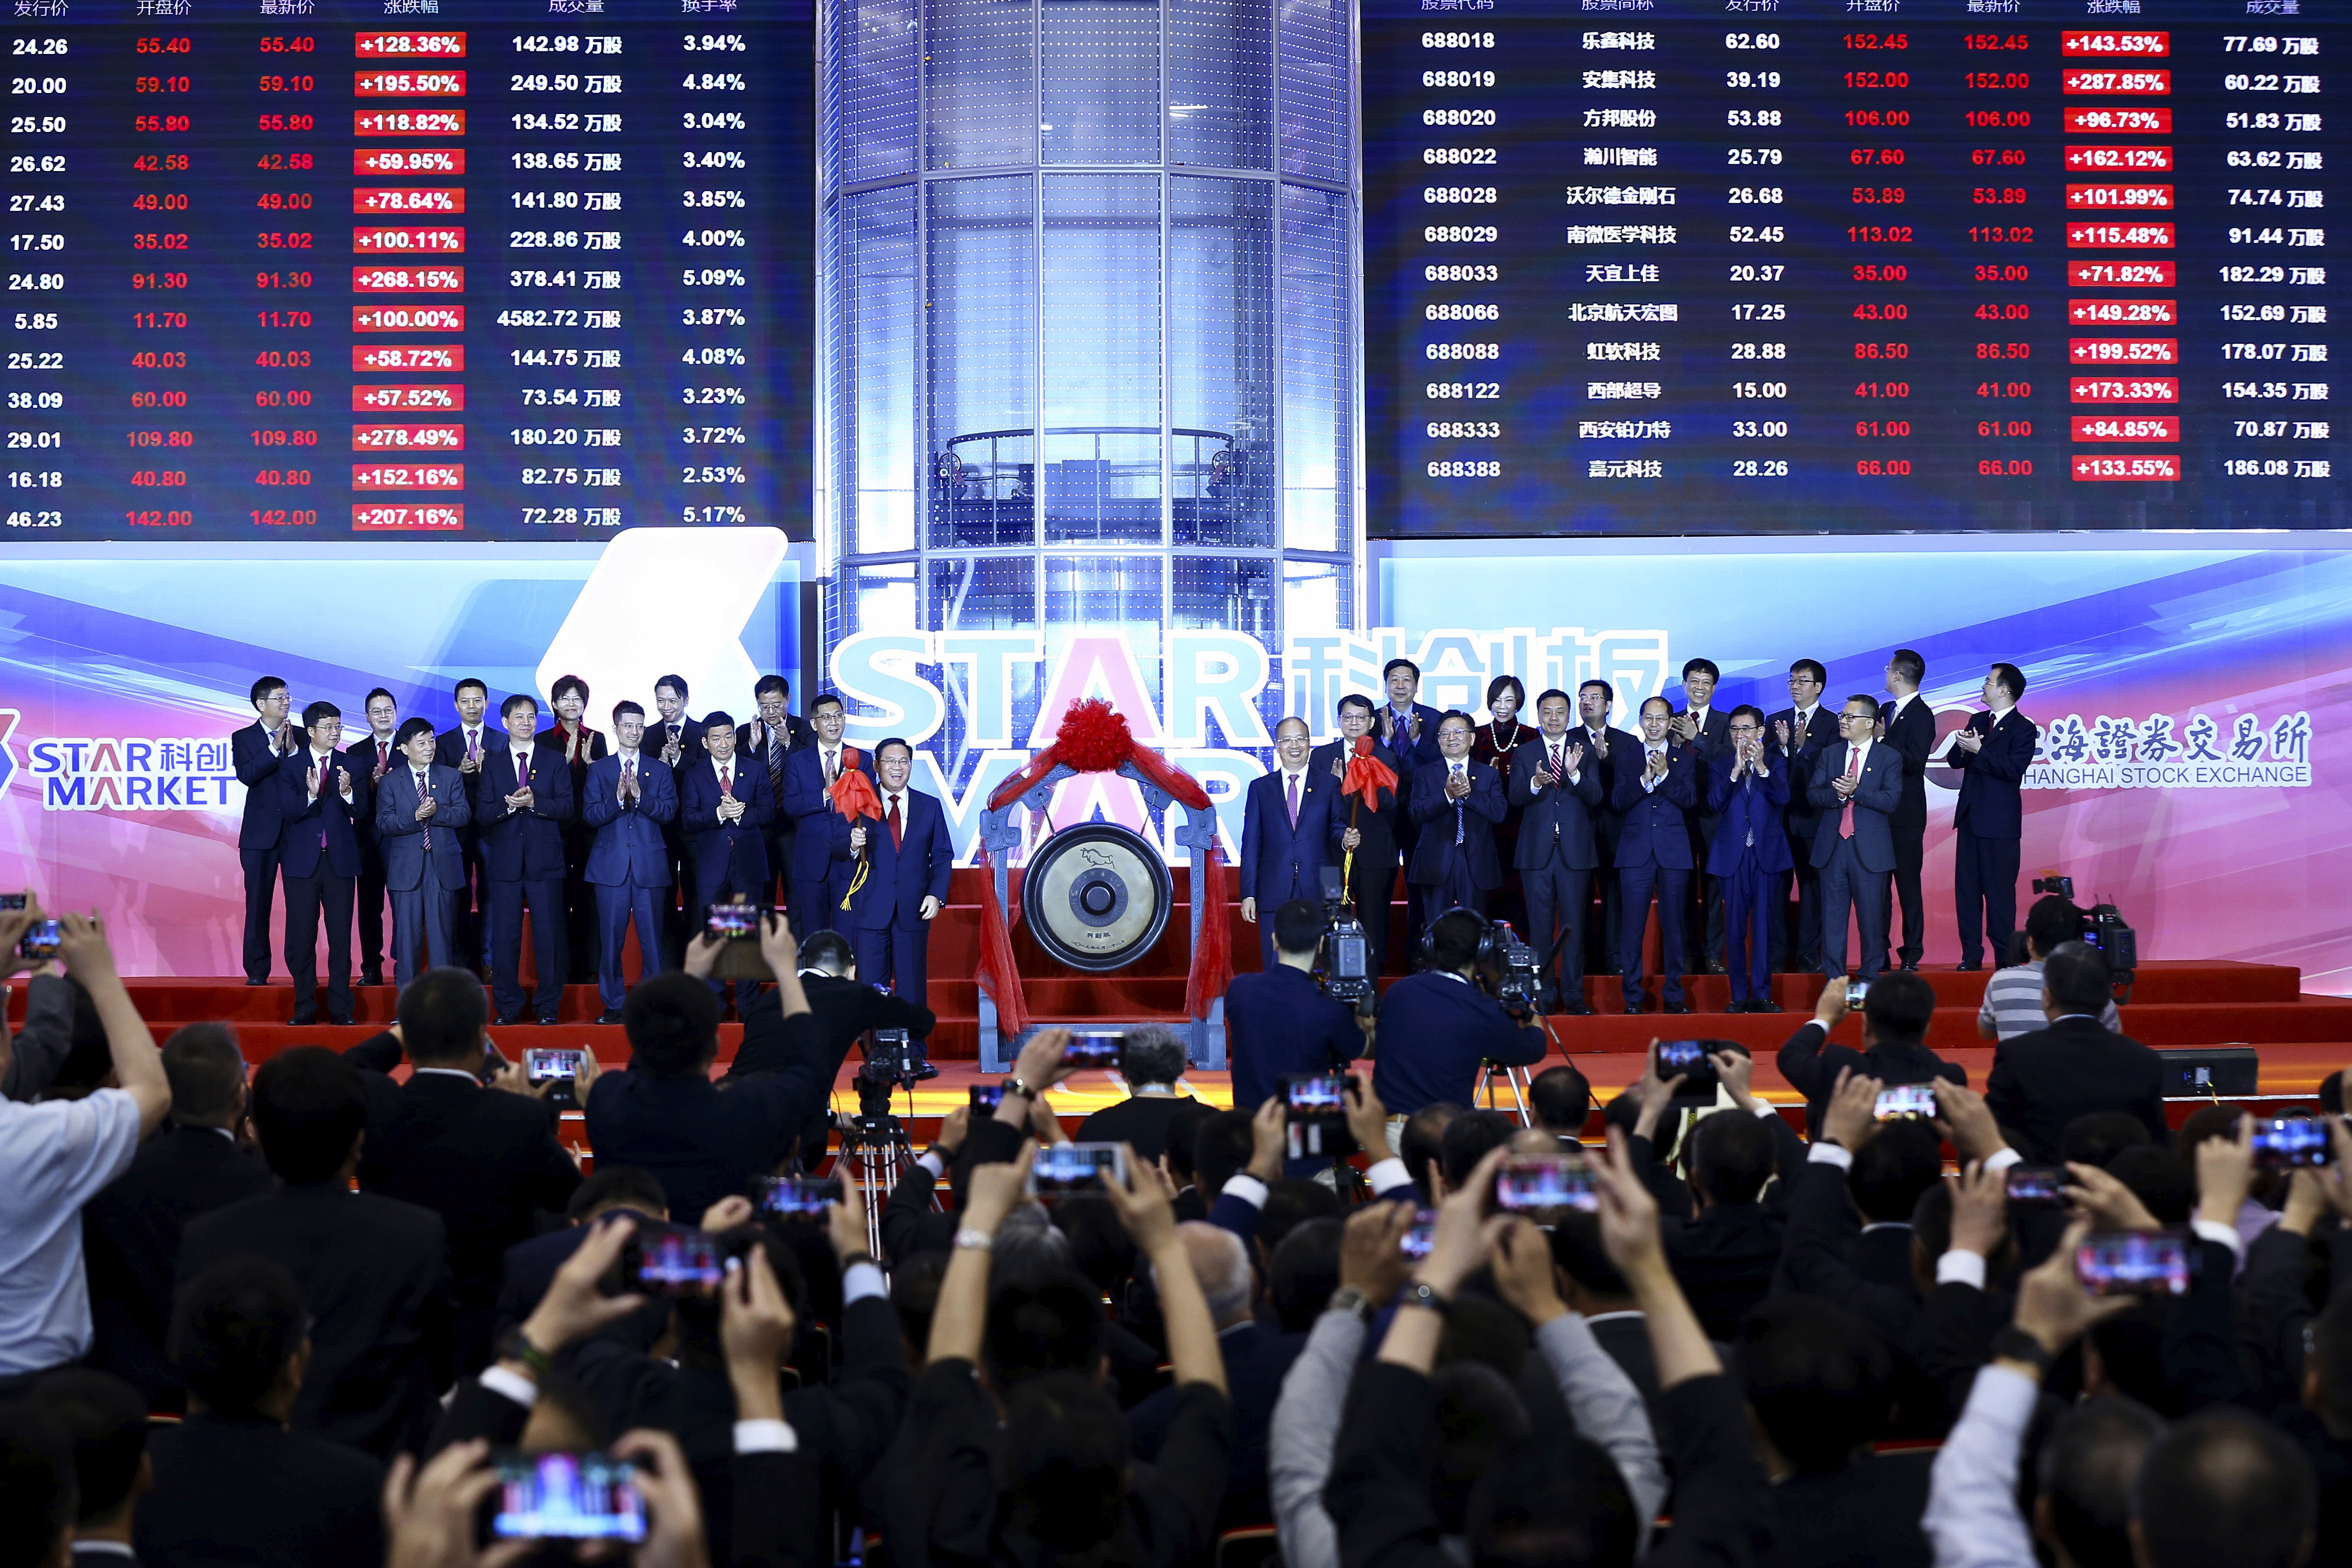 Li Qiang, center left, Shanghai's Party chief, and Yi Huiman, center right, chairman at China Securities Regulatory Commission, and the heads of 25 companies celebrate the launch of the SSE STAR Market in the hall of Shanghai Securities Exchange in Shanghai, China on July 22, 2019.